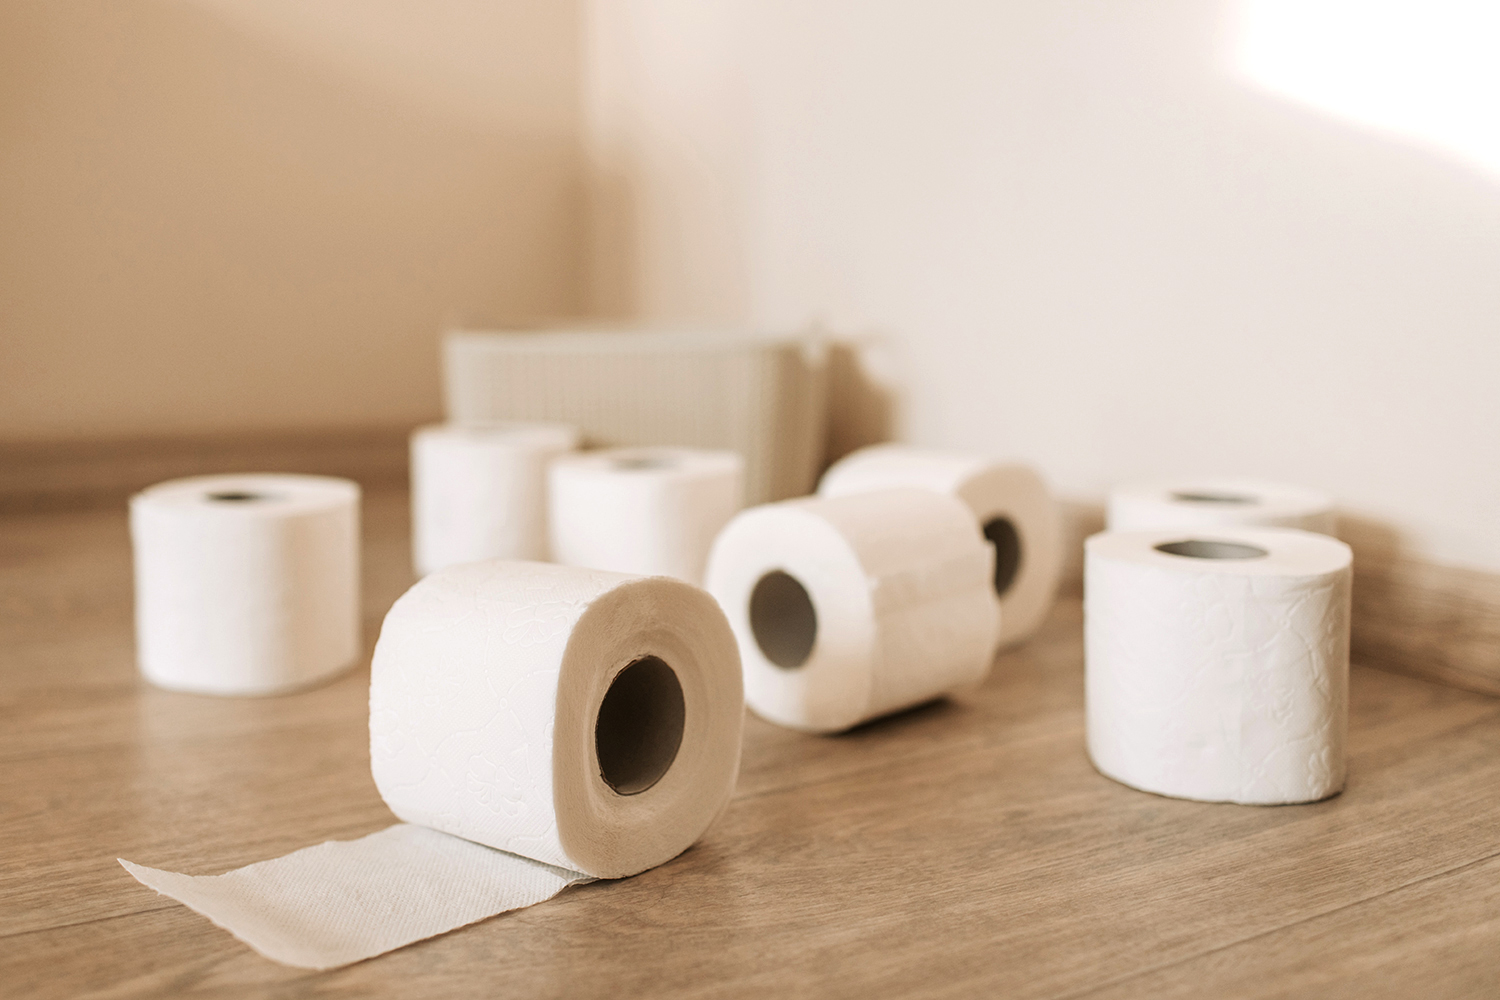 Stocking Up on Toilet Paper